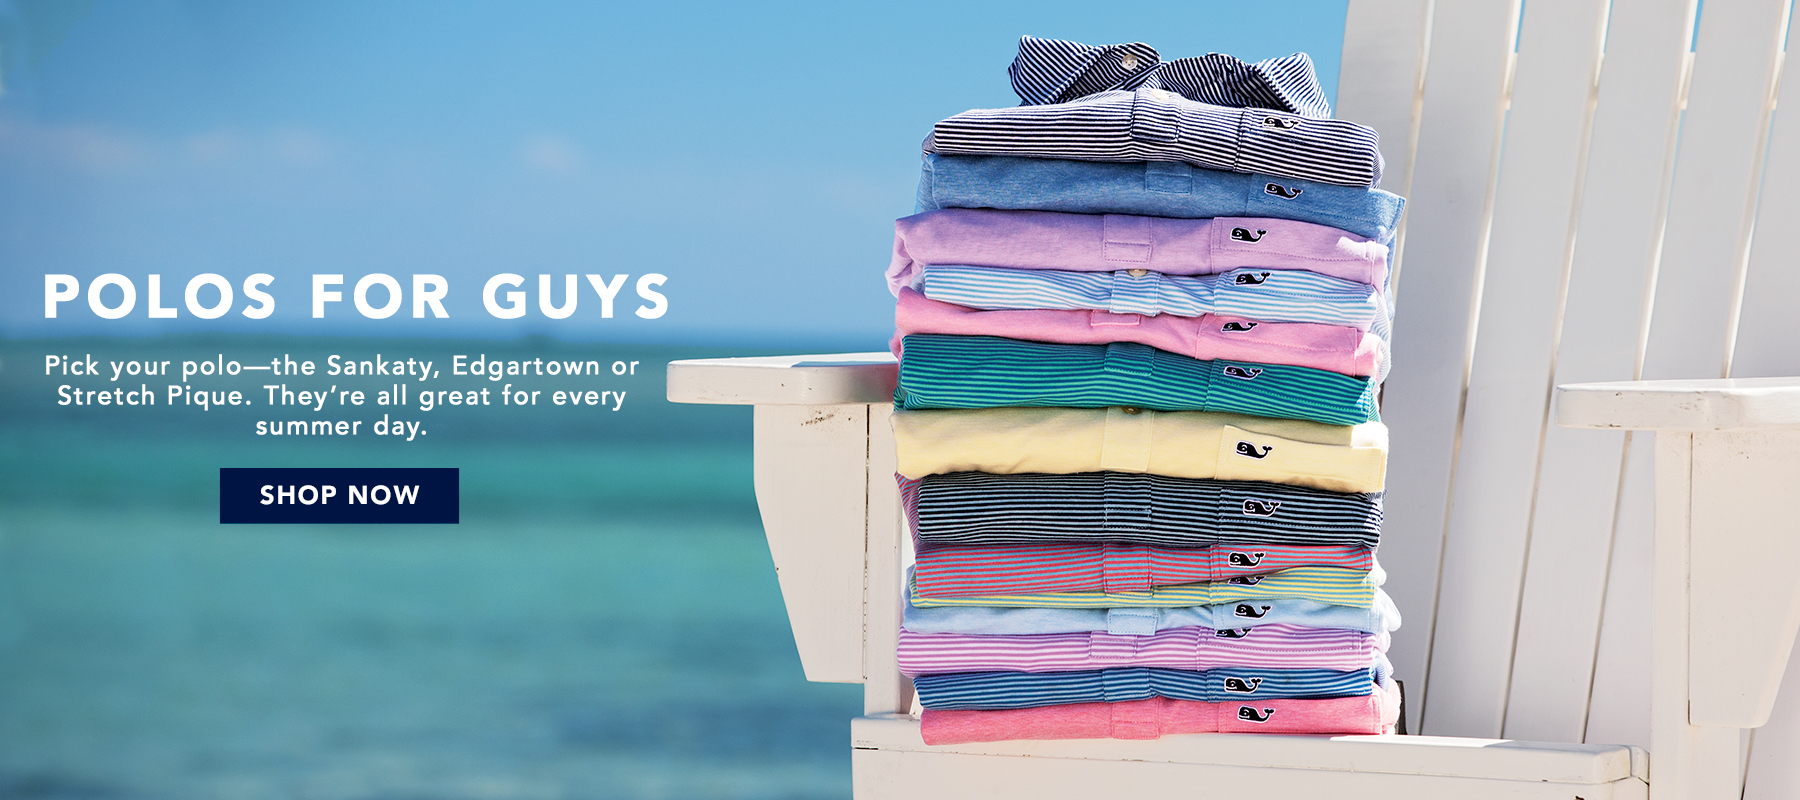 Polos for Guys. Pick your polo—the Sankaty, Edgartown or Stretch Pique. They're all great for every summer day. Shop Now.